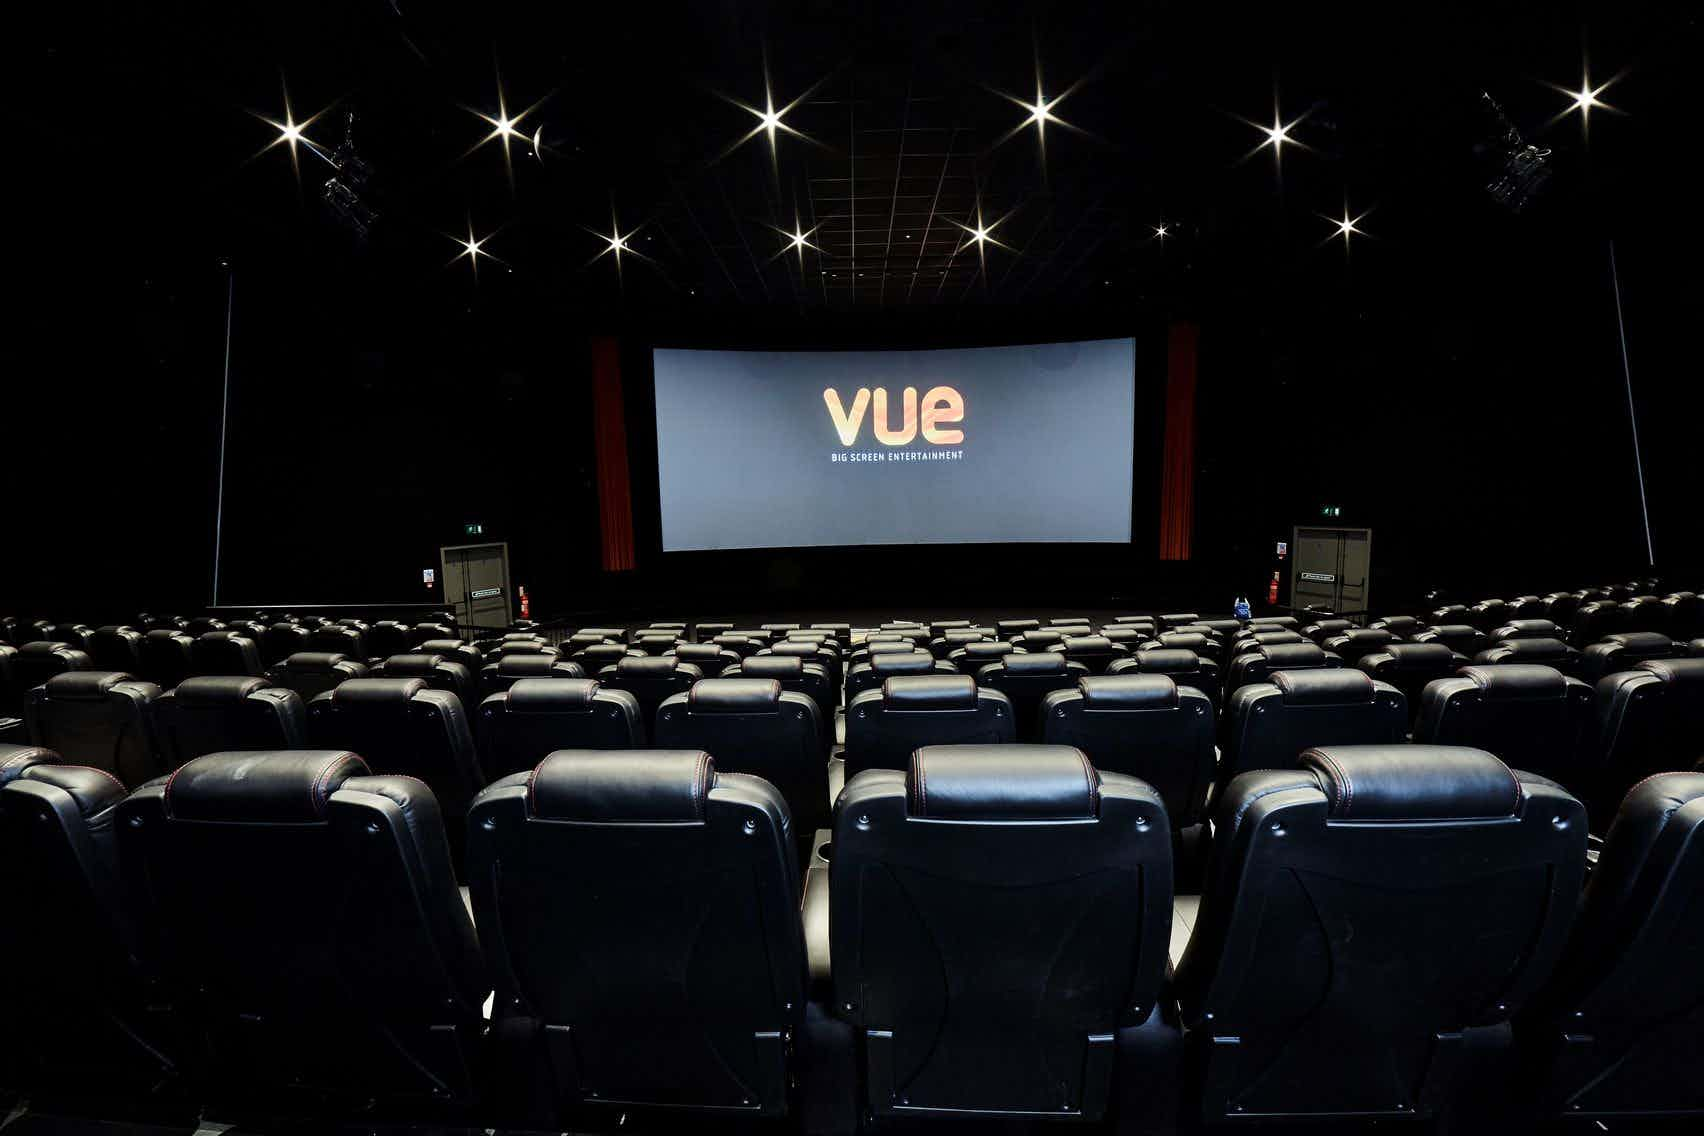 Vue Leicester Square - A London Cinema for Hire